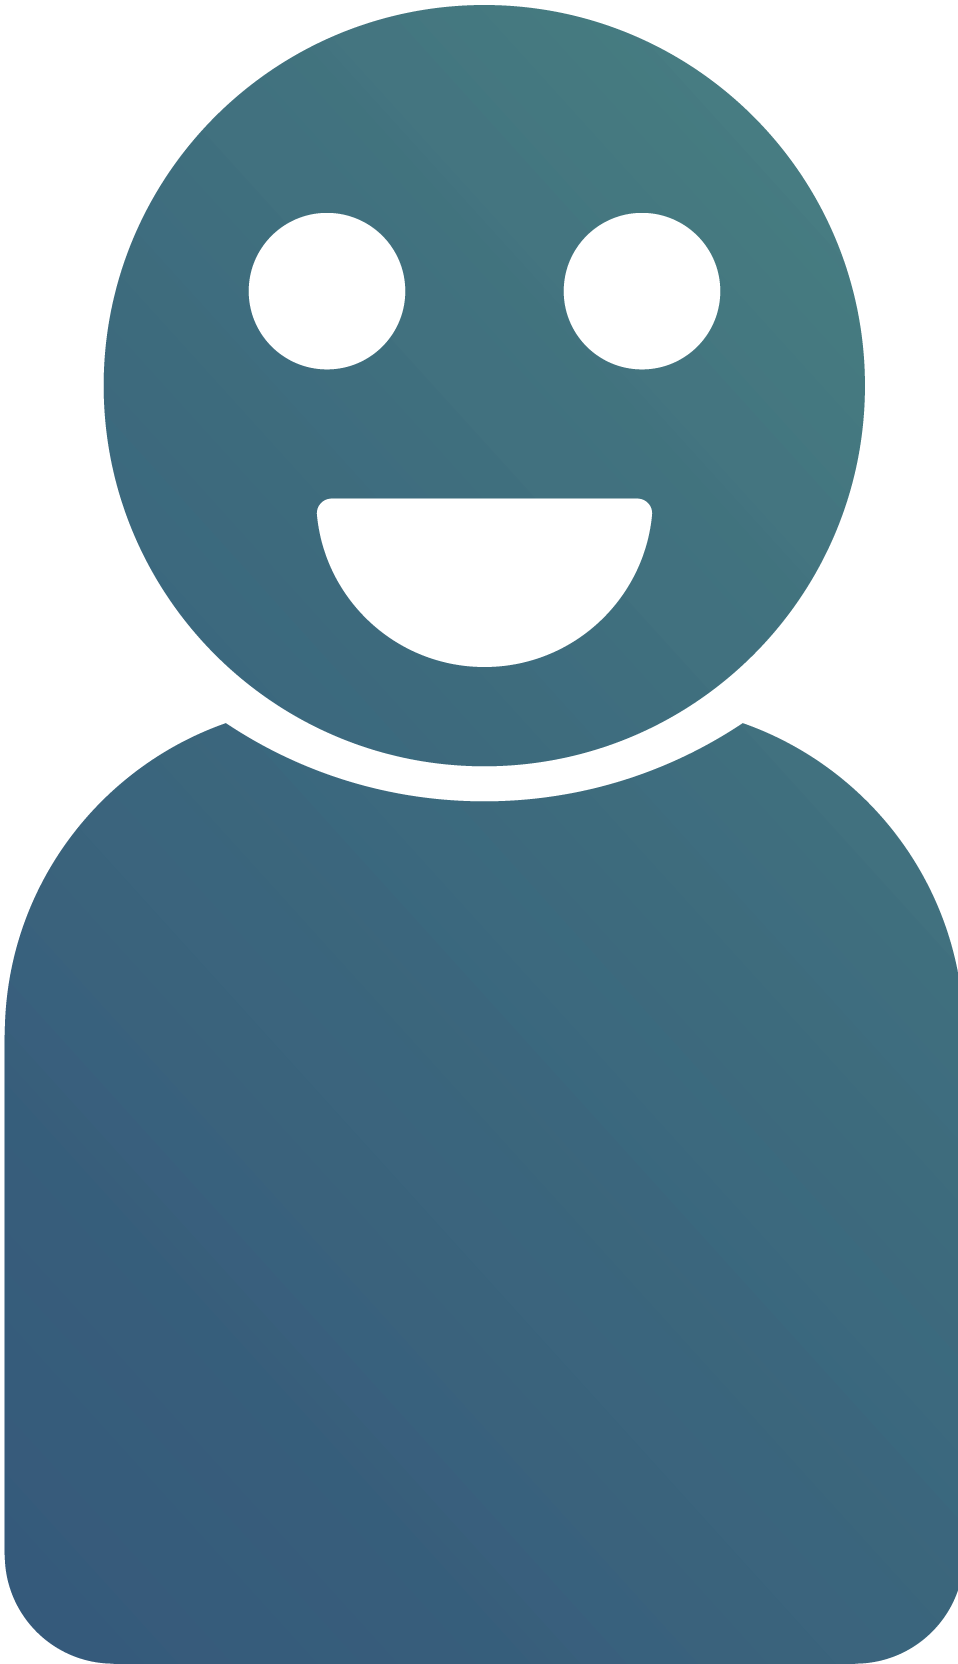 happy person icon gradient small.png